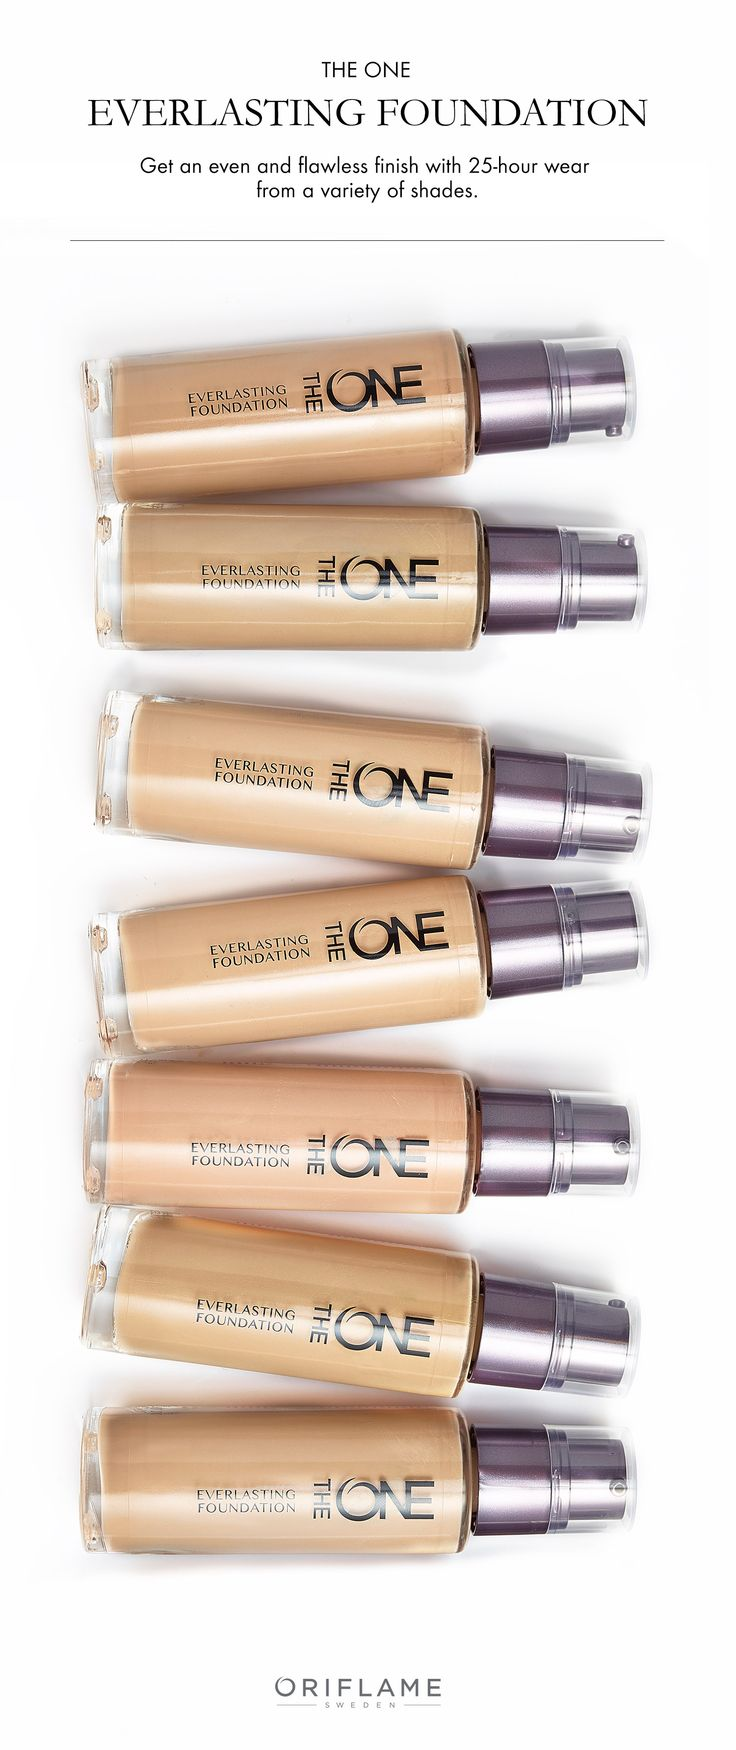 So many shades, so little time! Our bestselling EverLasting Foundation is back in action with improved 25-hour wear to cover imperfections for a flawless finish, all with shades that easily match your skin tone. P.S. It's water and sweat-resistant, too!